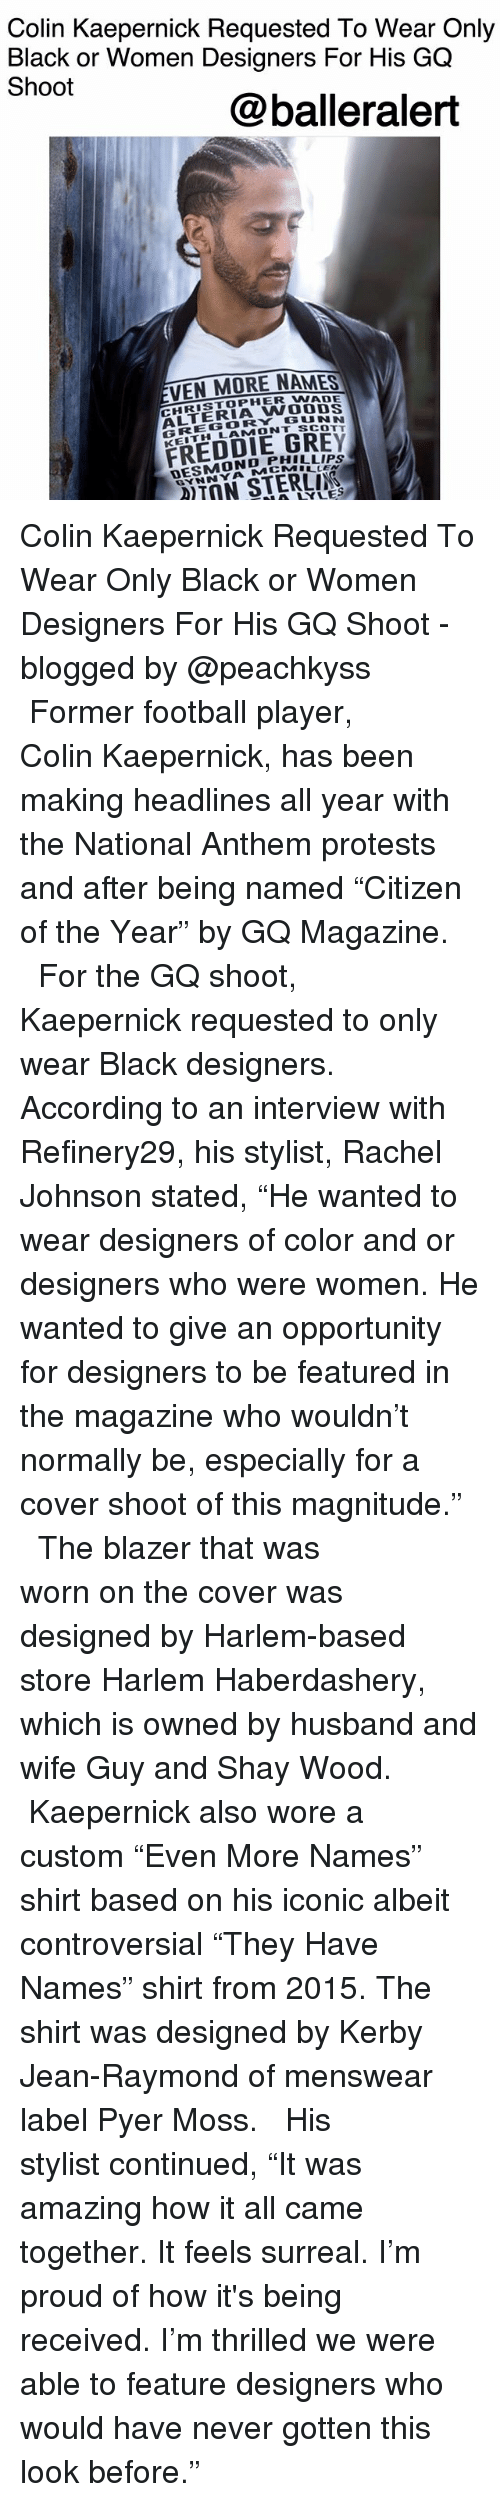 "Colin Kaepernick, Football, and Memes: Colin Kaepernick Requested To Wear Only  Black or Women Designers For His GQ  Shoot  @balleralert  VEN MORE NAMES  CHRISTOPHER WADE  ALTERIA WOOOS  GREGORY GUNN  KEITH LAMONT SCOTT  FREDDIE GREY  DESMOND PHILLIPs  MCMILLEN  GYNNYA  DIDYLES Colin Kaepernick Requested To Wear Only Black or Women Designers For His GQ Shoot - blogged by @peachkyss ⠀⠀⠀⠀⠀⠀⠀ ⠀⠀⠀⠀⠀⠀⠀ Former football player, Colin Kaepernick, has been making headlines all year with the National Anthem protests and after being named ""Citizen of the Year"" by GQ Magazine. ⠀⠀⠀⠀⠀⠀⠀ ⠀⠀⠀⠀⠀⠀⠀ For the GQ shoot, Kaepernick requested to only wear Black designers. According to an interview with Refinery29, his stylist, Rachel Johnson stated, ""He wanted to wear designers of color and or designers who were women. He wanted to give an opportunity for designers to be featured in the magazine who wouldn't normally be, especially for a cover shoot of this magnitude."" ⠀⠀⠀⠀⠀⠀⠀ ⠀⠀⠀⠀⠀⠀⠀ The blazer that was worn on the cover was designed by Harlem-based store Harlem Haberdashery, which is owned by husband and wife Guy and Shay Wood. ⠀⠀⠀⠀⠀⠀⠀ ⠀⠀⠀⠀⠀⠀⠀ Kaepernick also wore a custom ""Even More Names"" shirt based on his iconic albeit controversial ""They Have Names"" shirt from 2015. The shirt was designed by Kerby Jean-Raymond of menswear label Pyer Moss. ⠀⠀⠀⠀⠀⠀⠀ ⠀⠀⠀⠀⠀⠀⠀ His stylist continued, ""It was amazing how it all came together. It feels surreal. I'm proud of how it's being received. I'm thrilled we were able to feature designers who would have never gotten this look before."""